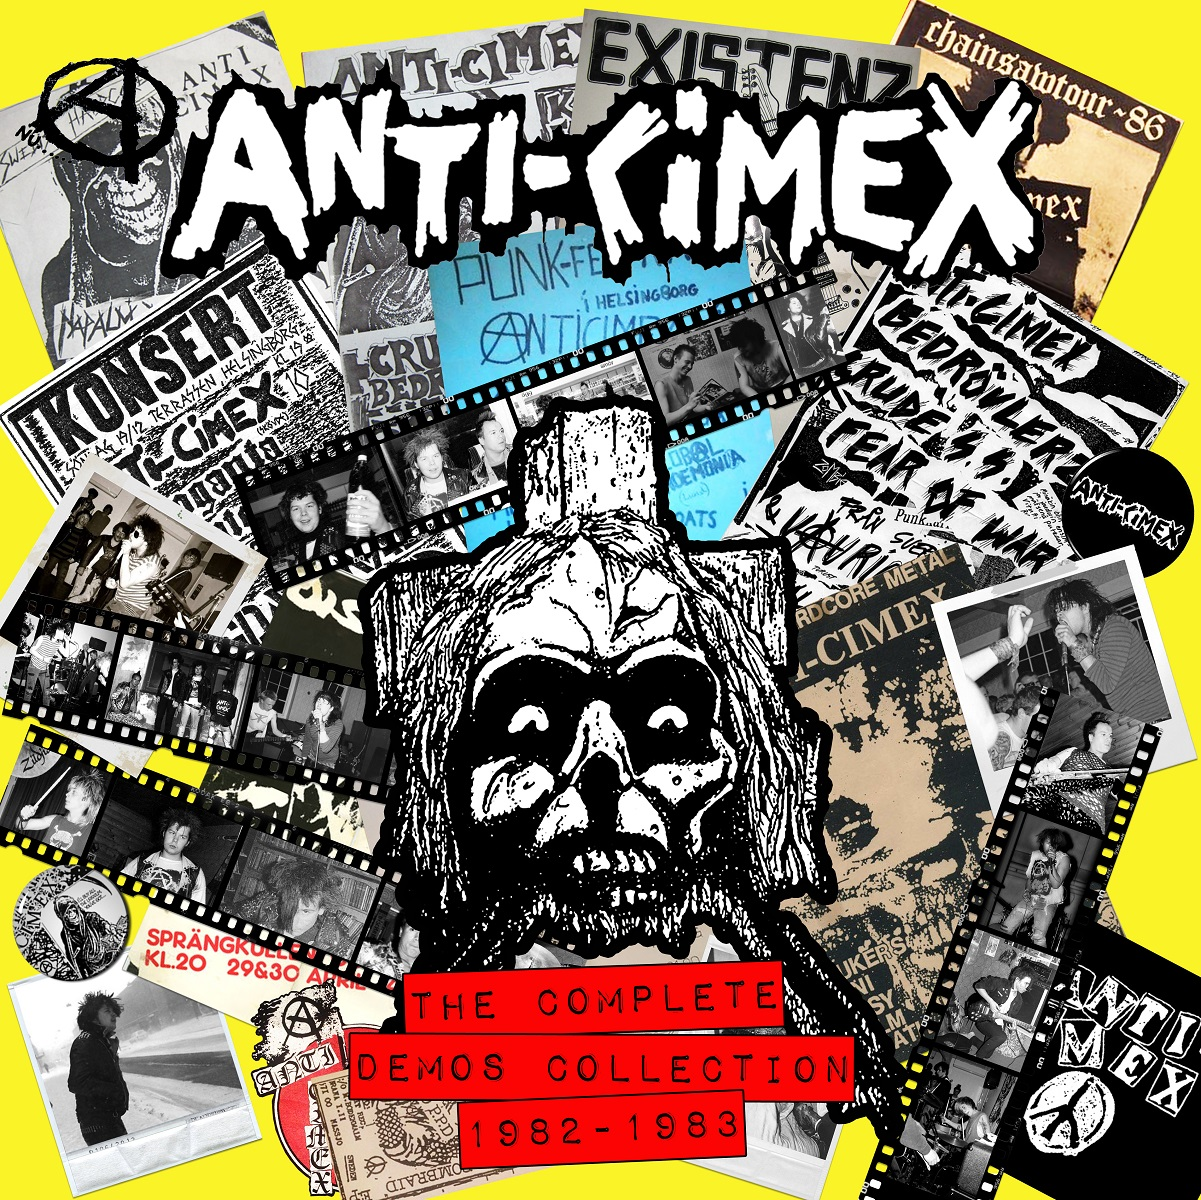 ANTI CIMEX – The Complete Demos Collection 1982-1983 LP